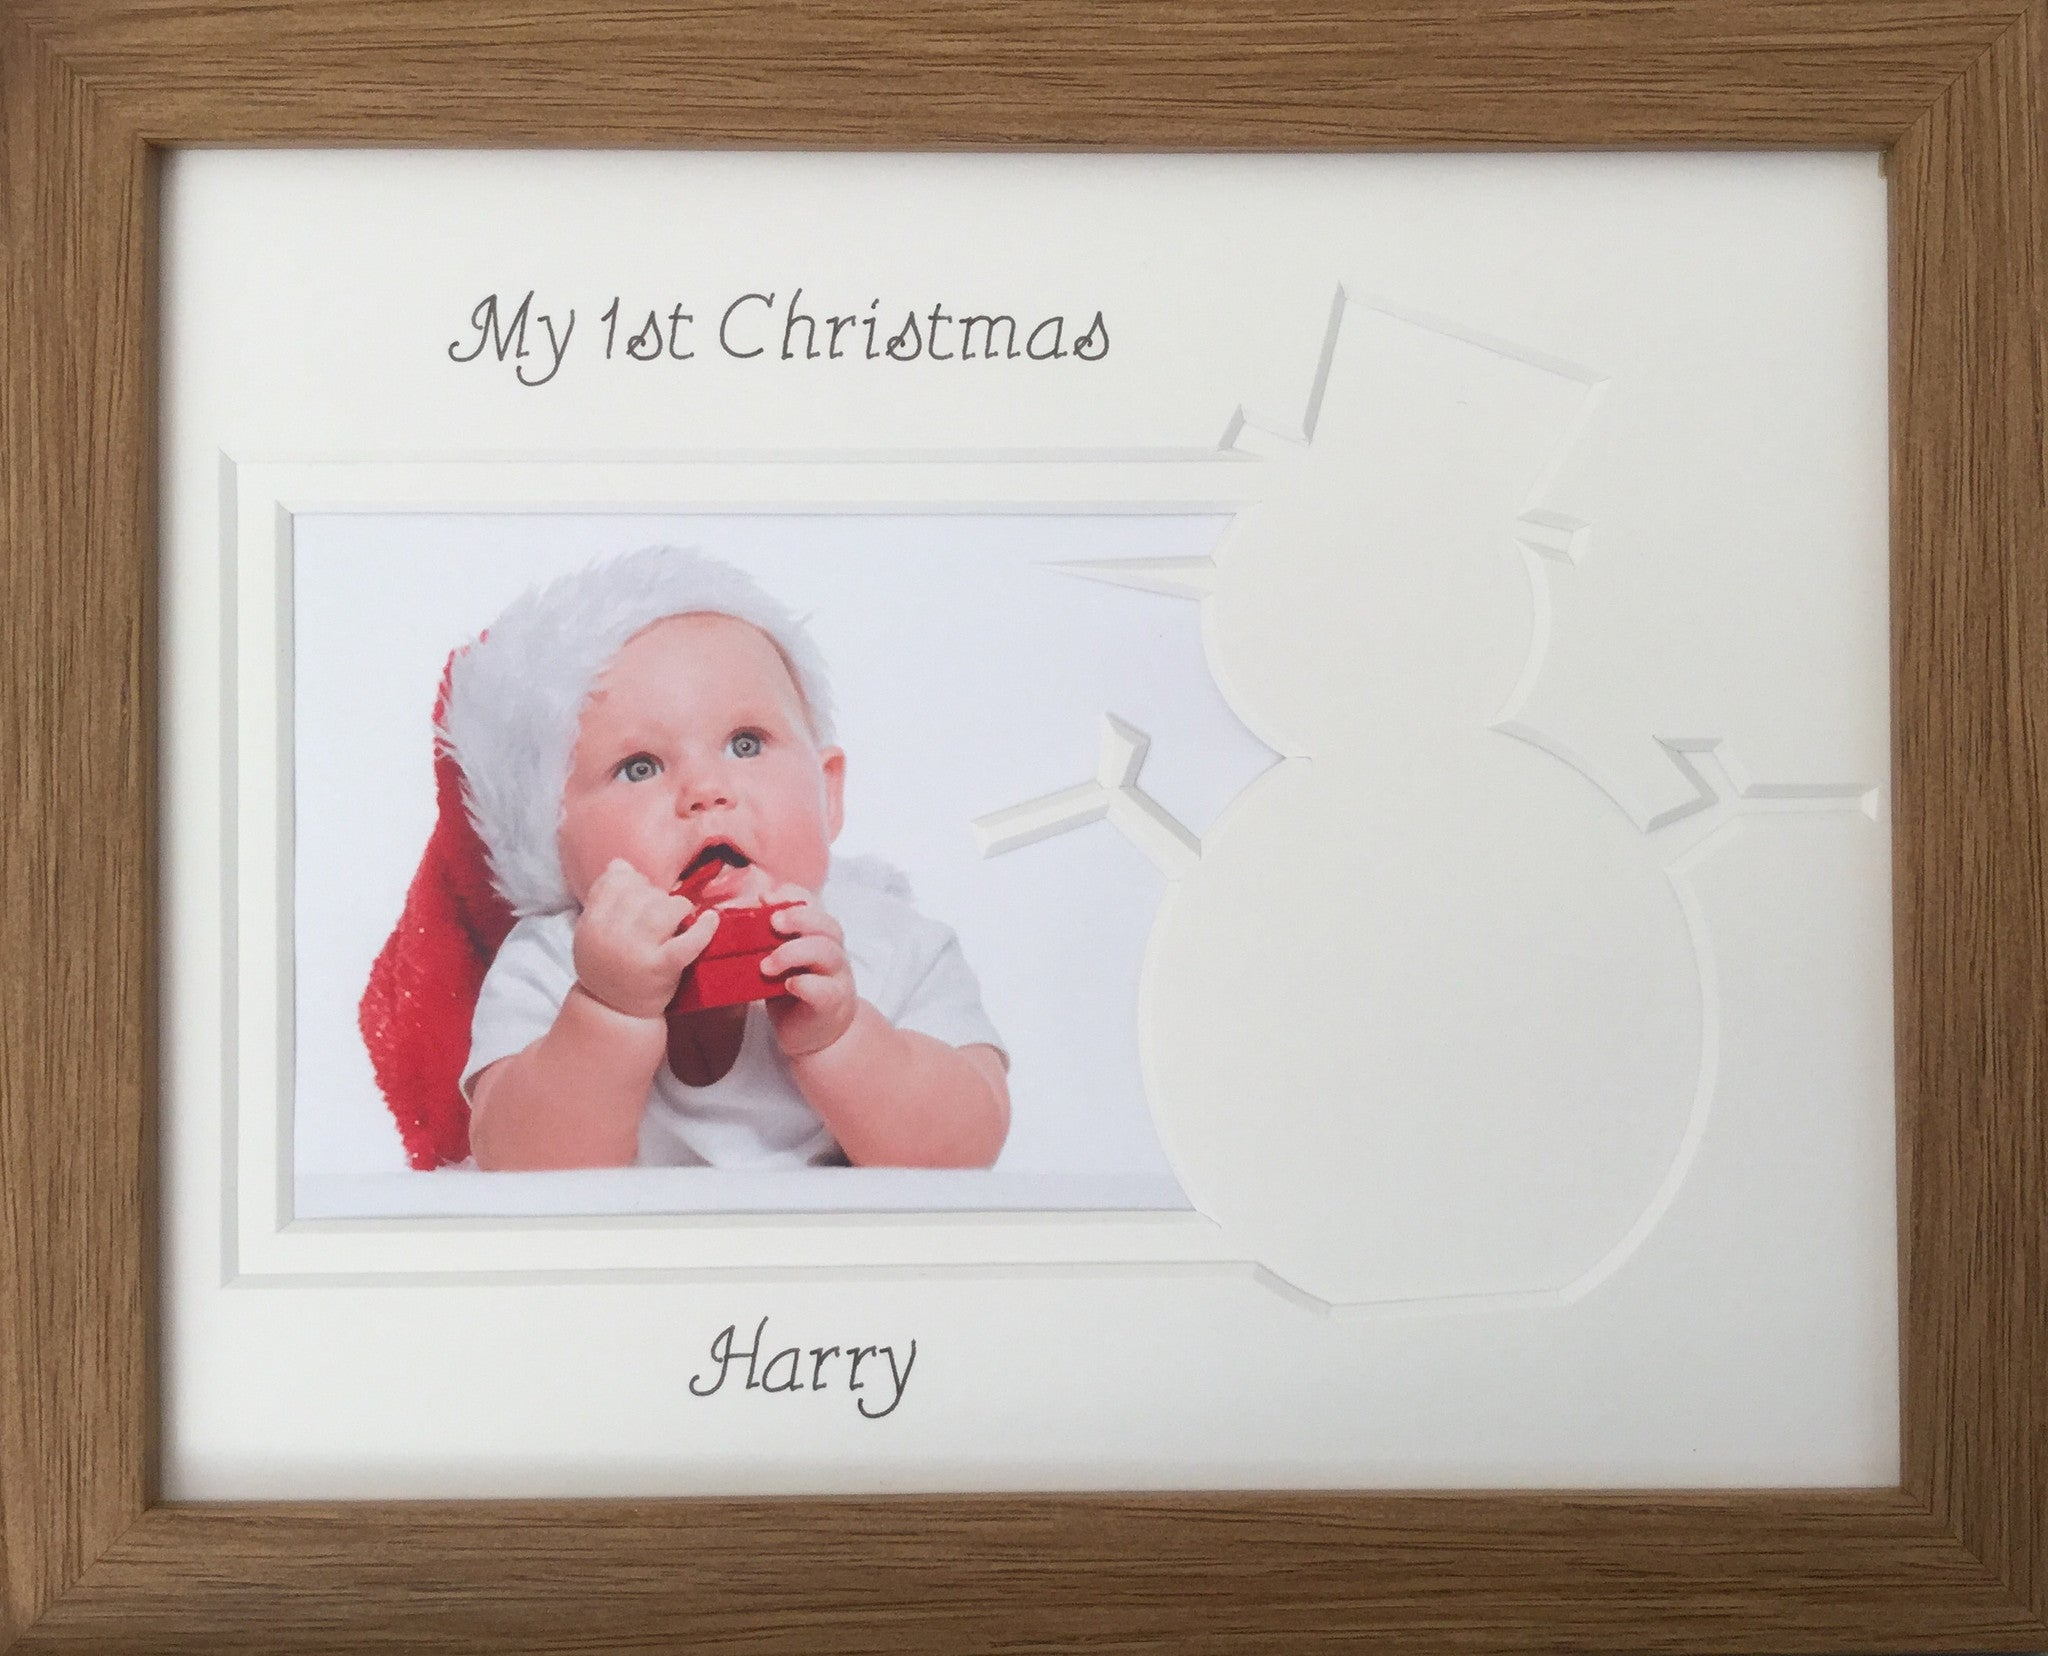 Personalised My First Christmas Photo Frame Snowman 9 X 7 Oak